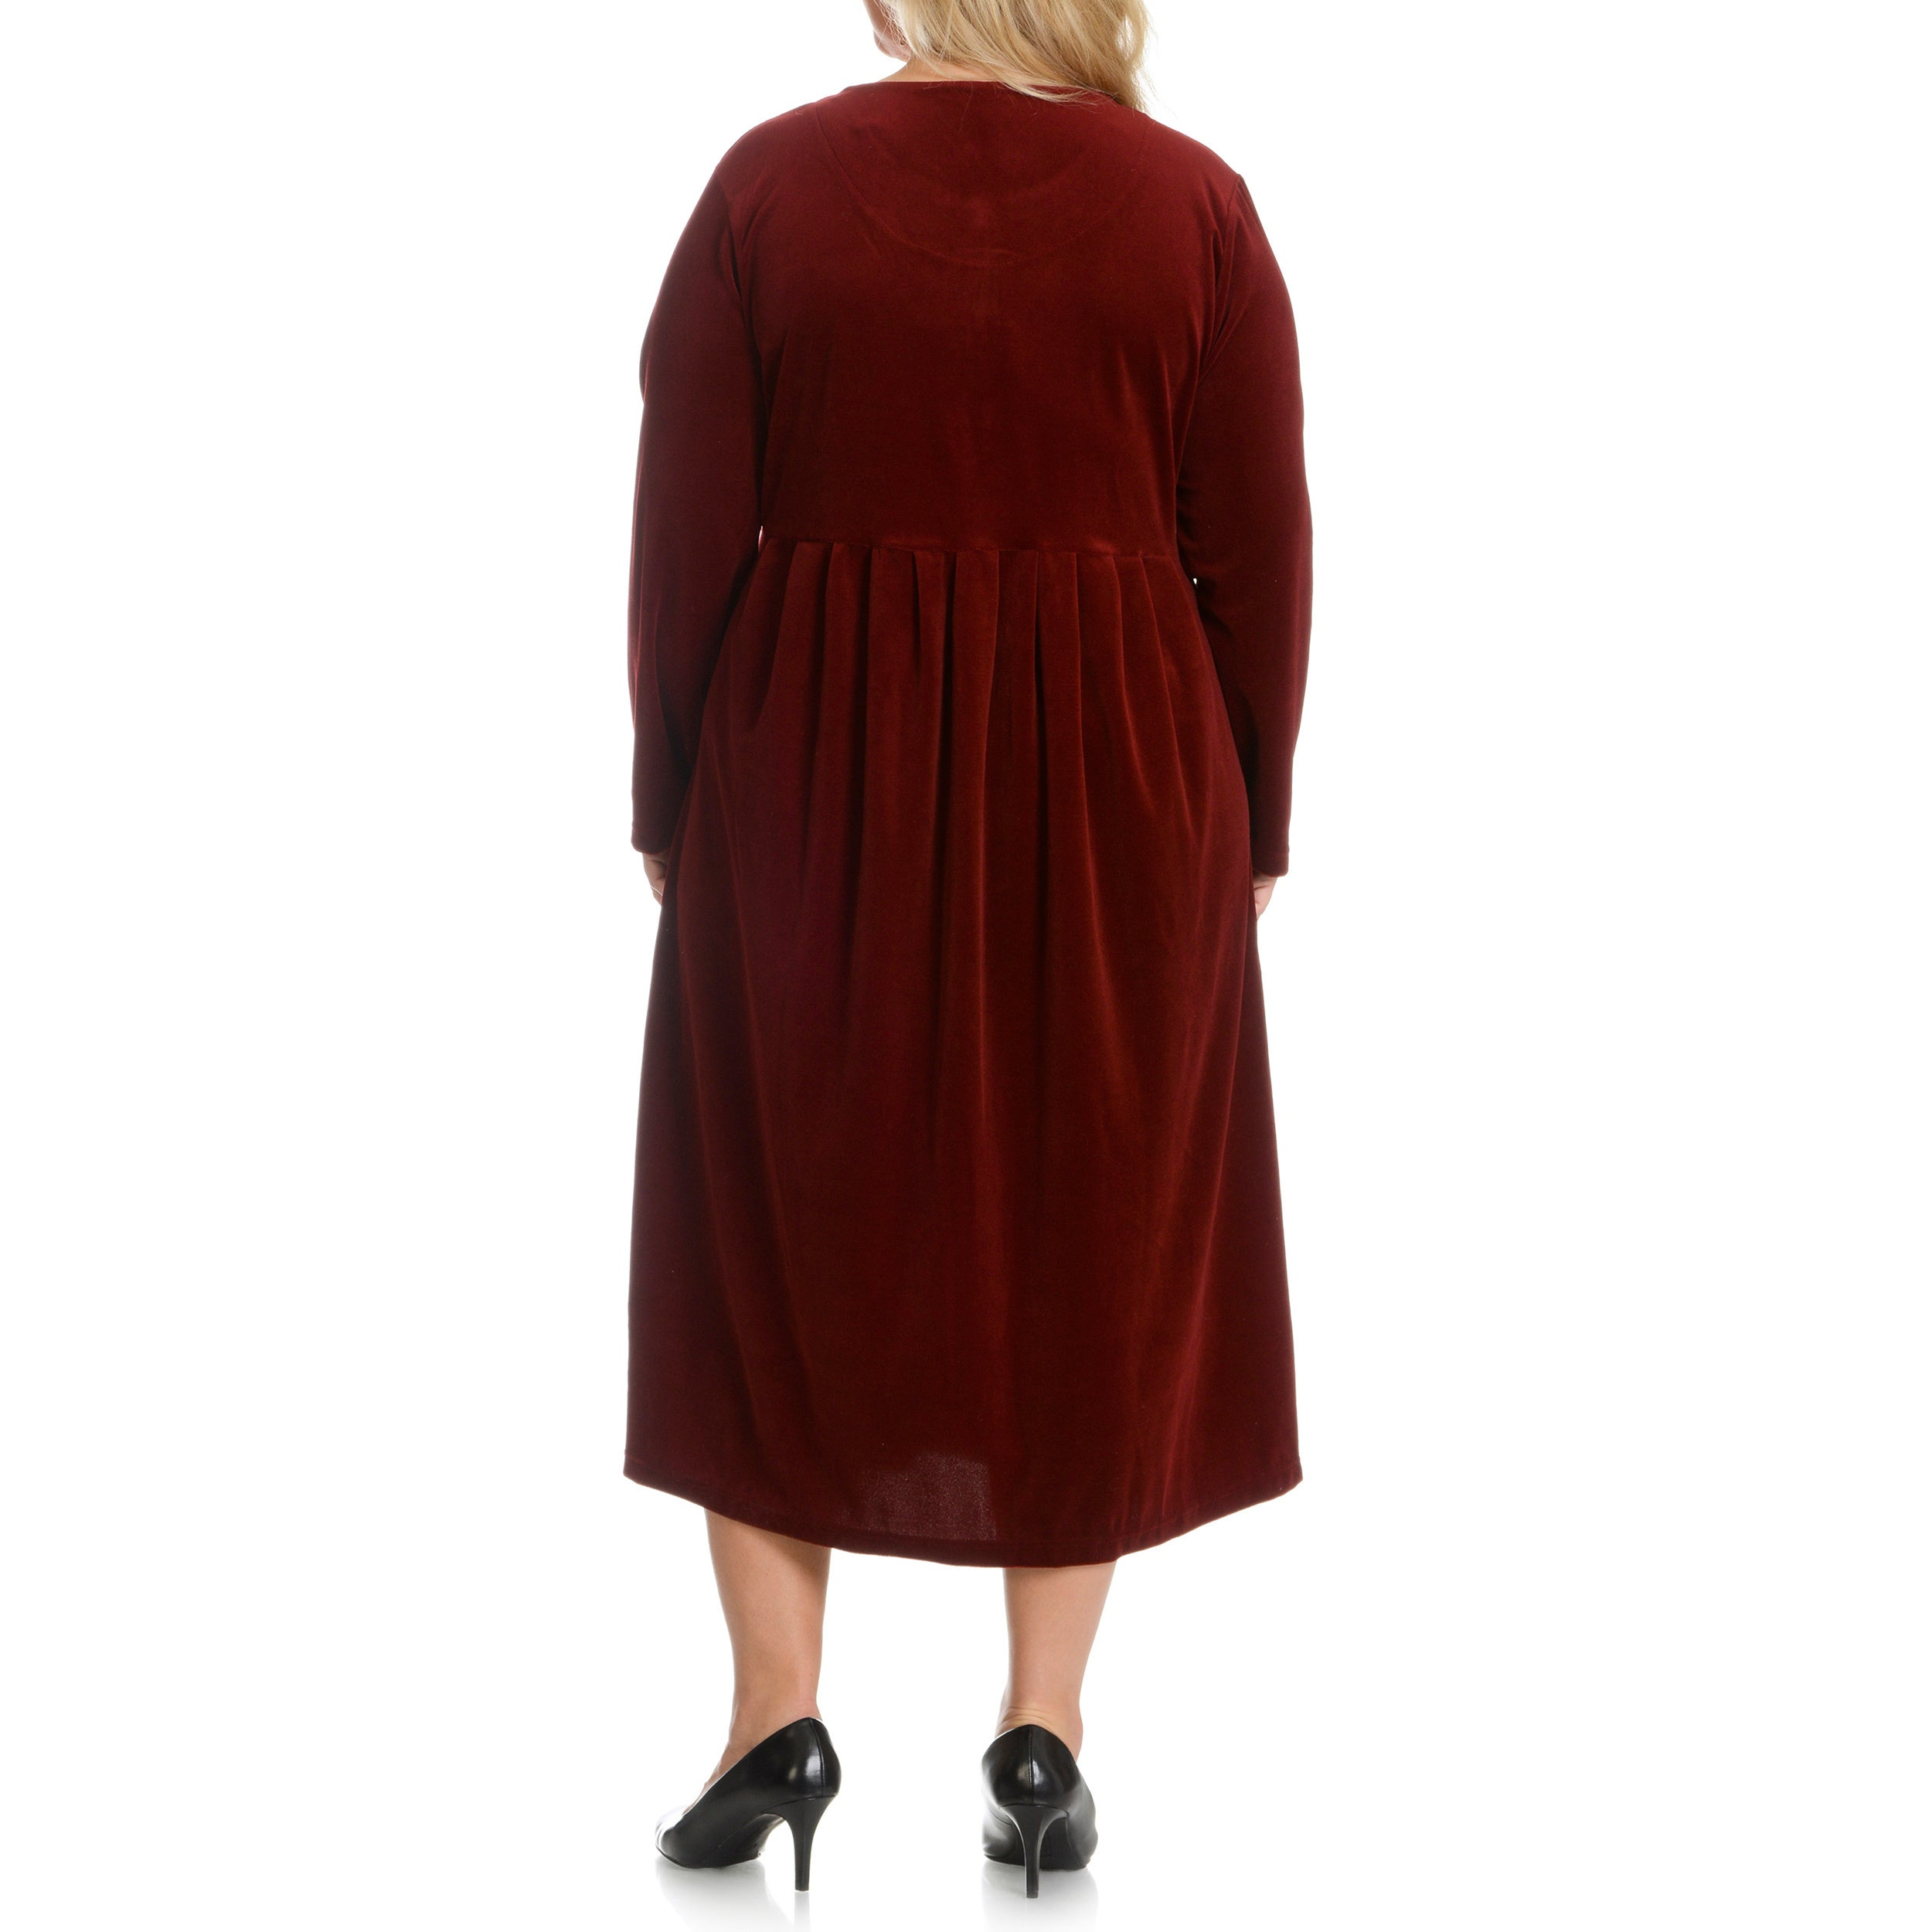 La Cera Womens Plus Size Solid Velour Dress Free Shipping Today